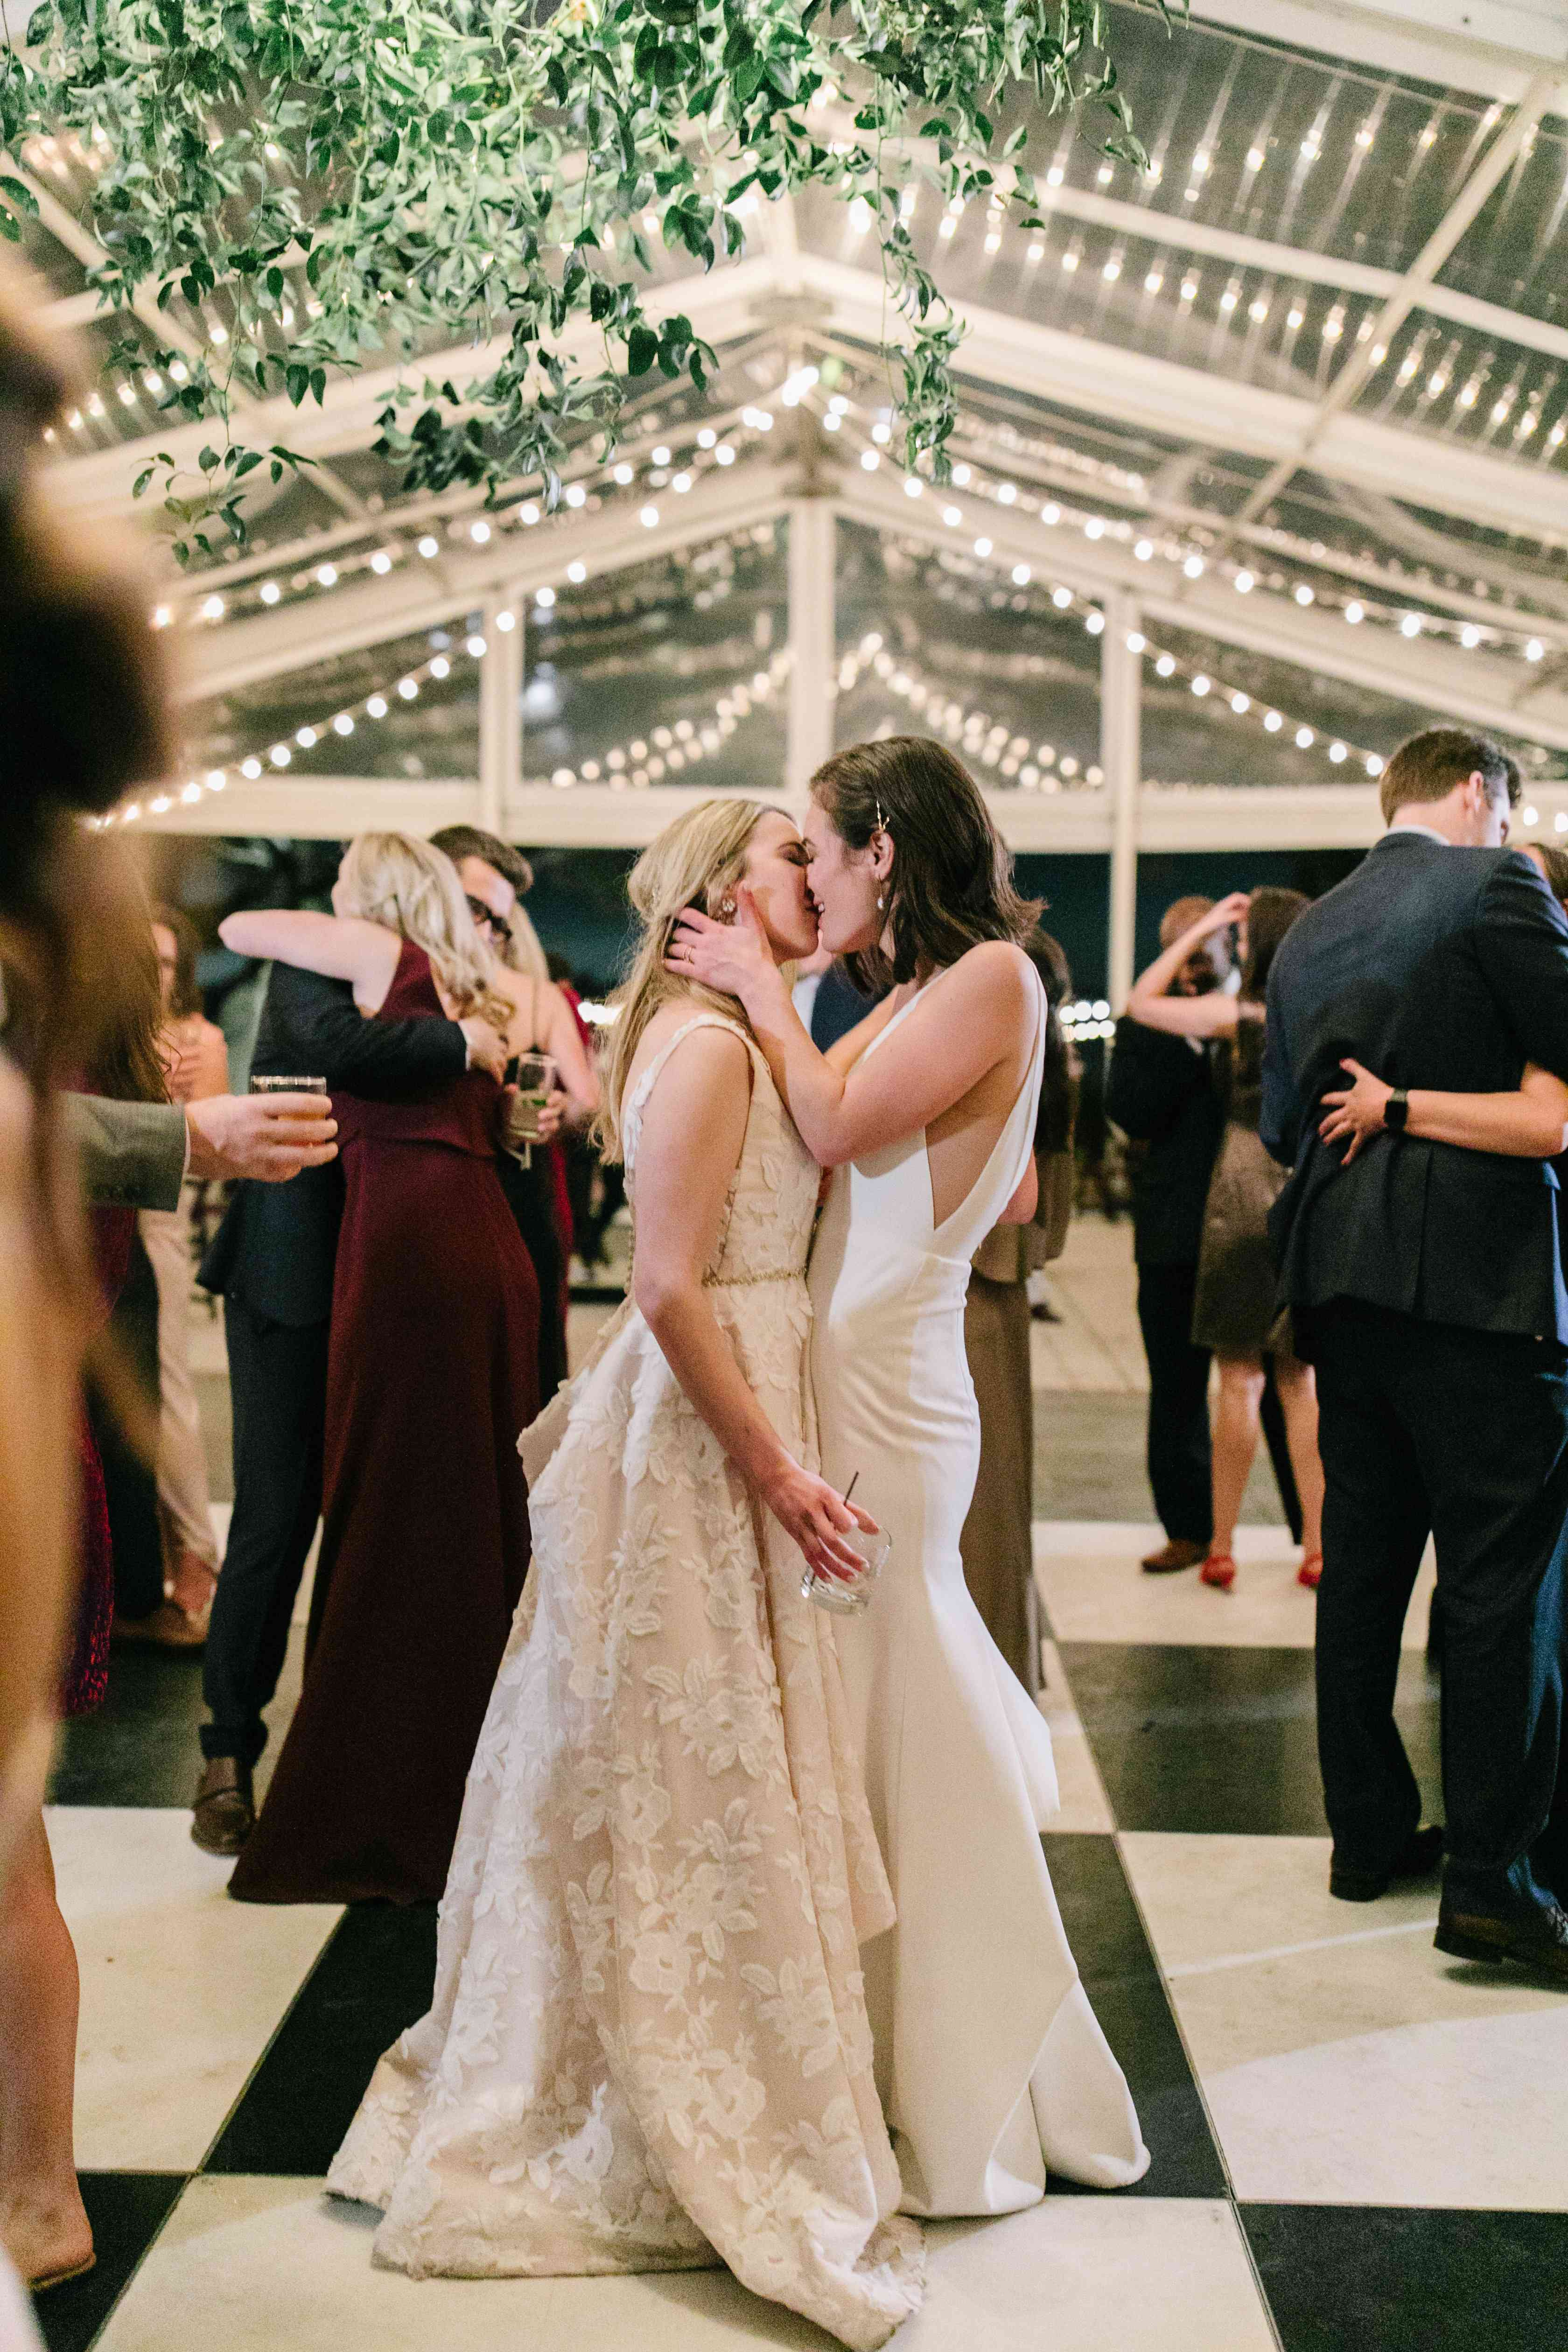 How To Dance At A Wedding.How To Find The Perfect First Dance Song For A Same Sex Wedding